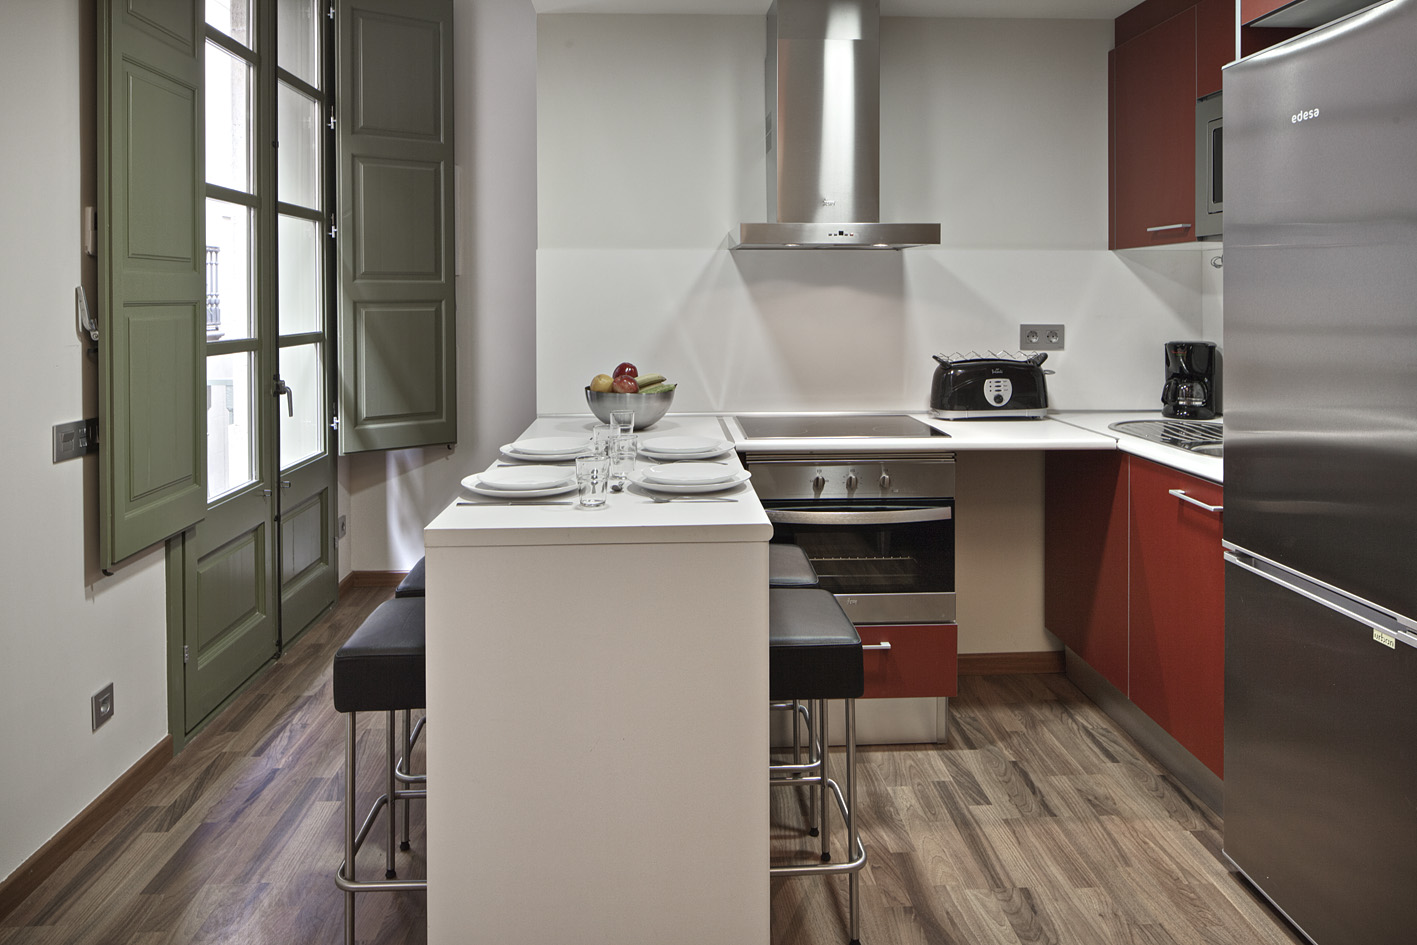 Plaza Real 12 apartment kitchen Amazing Apartments next to Las Ramblas   the Heart of Barcelona